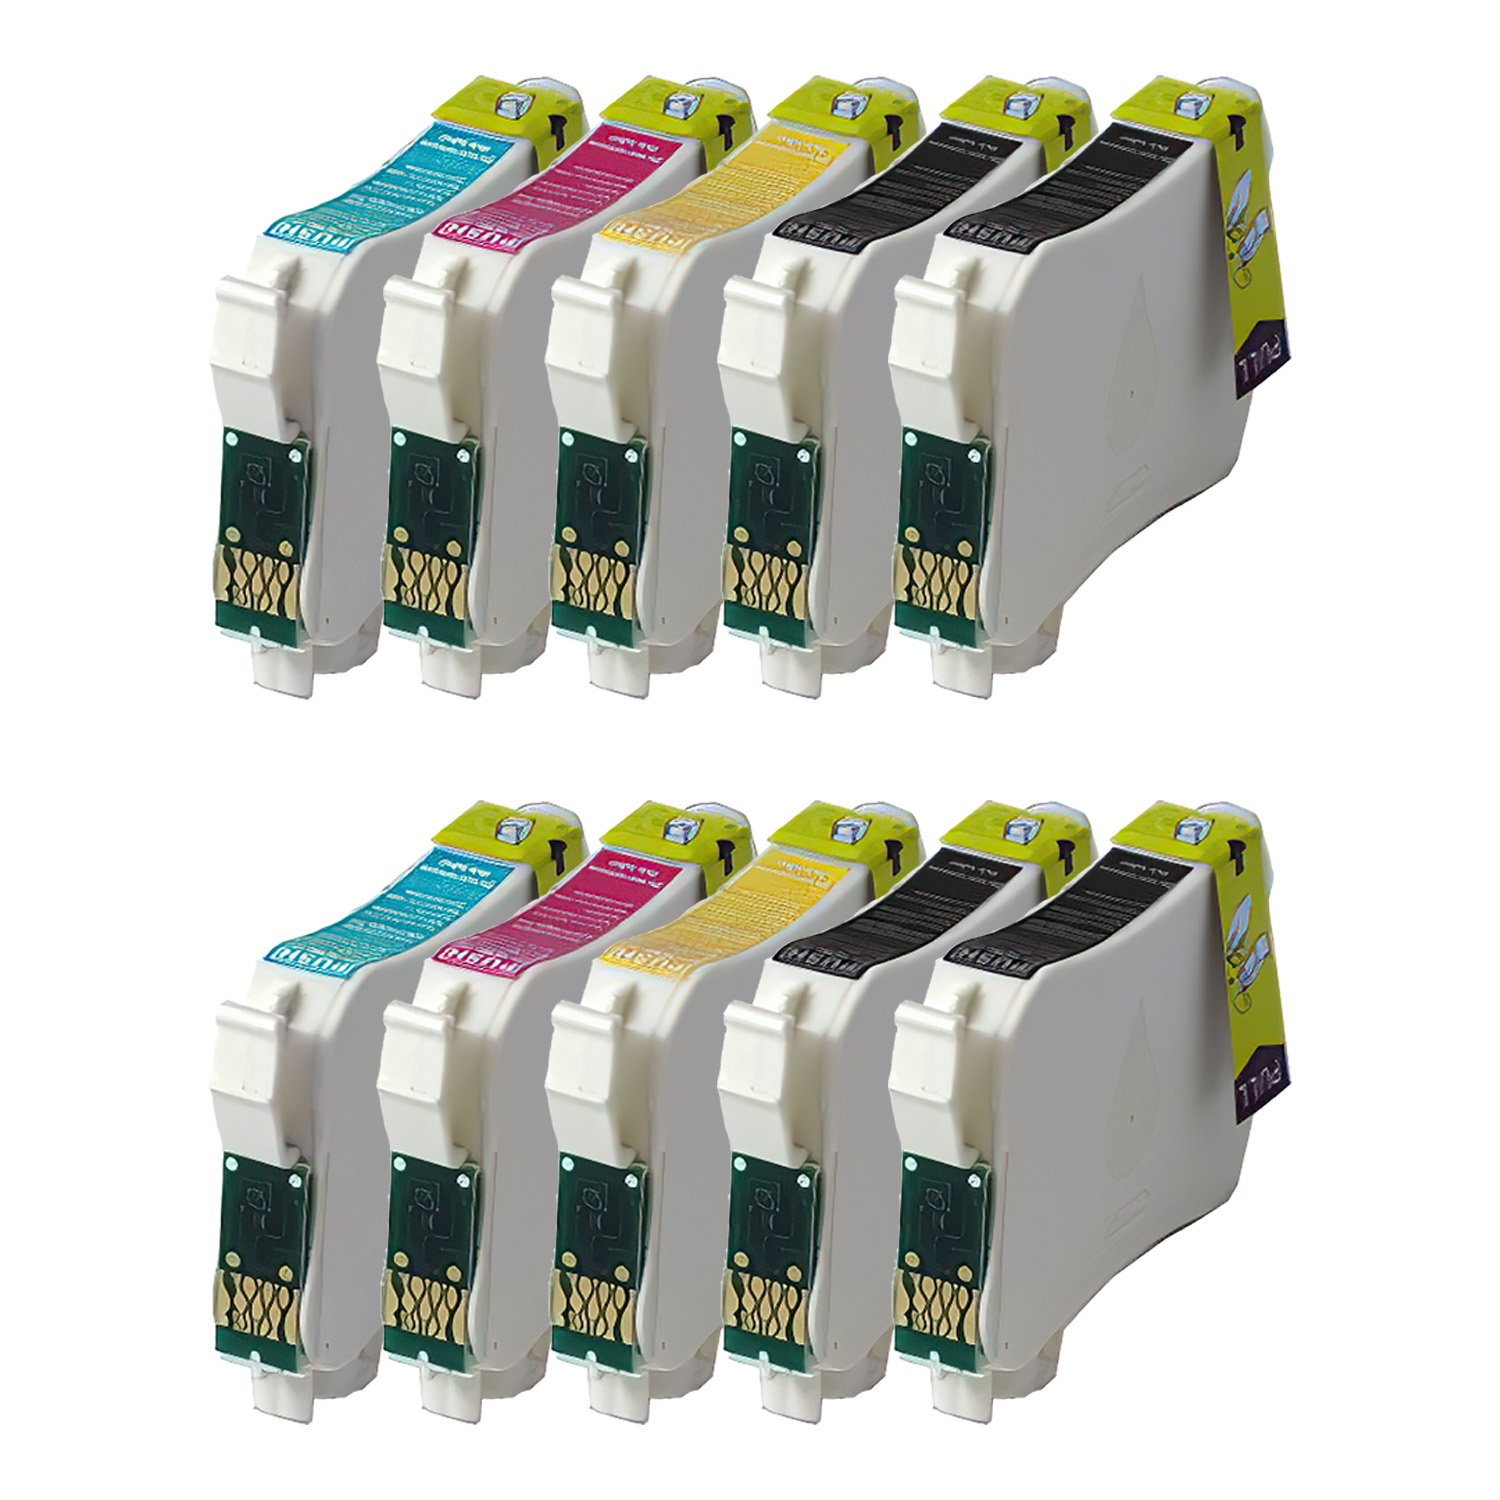 Remanufactured Epson 124 Inkjet Pack - 10 Cartridges